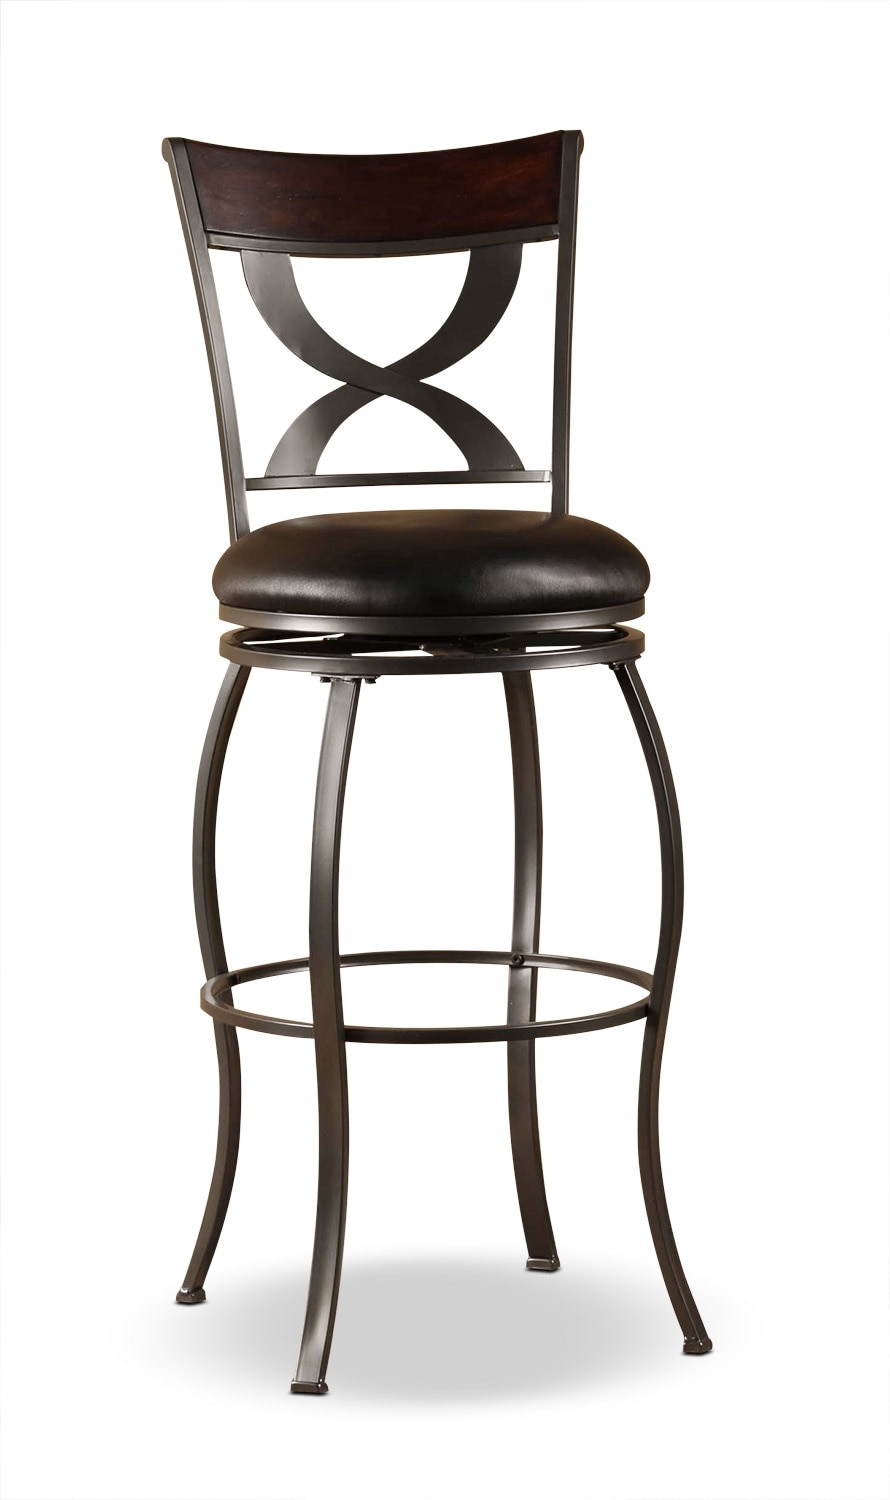 Stockport Counter-Height Swivel Stool